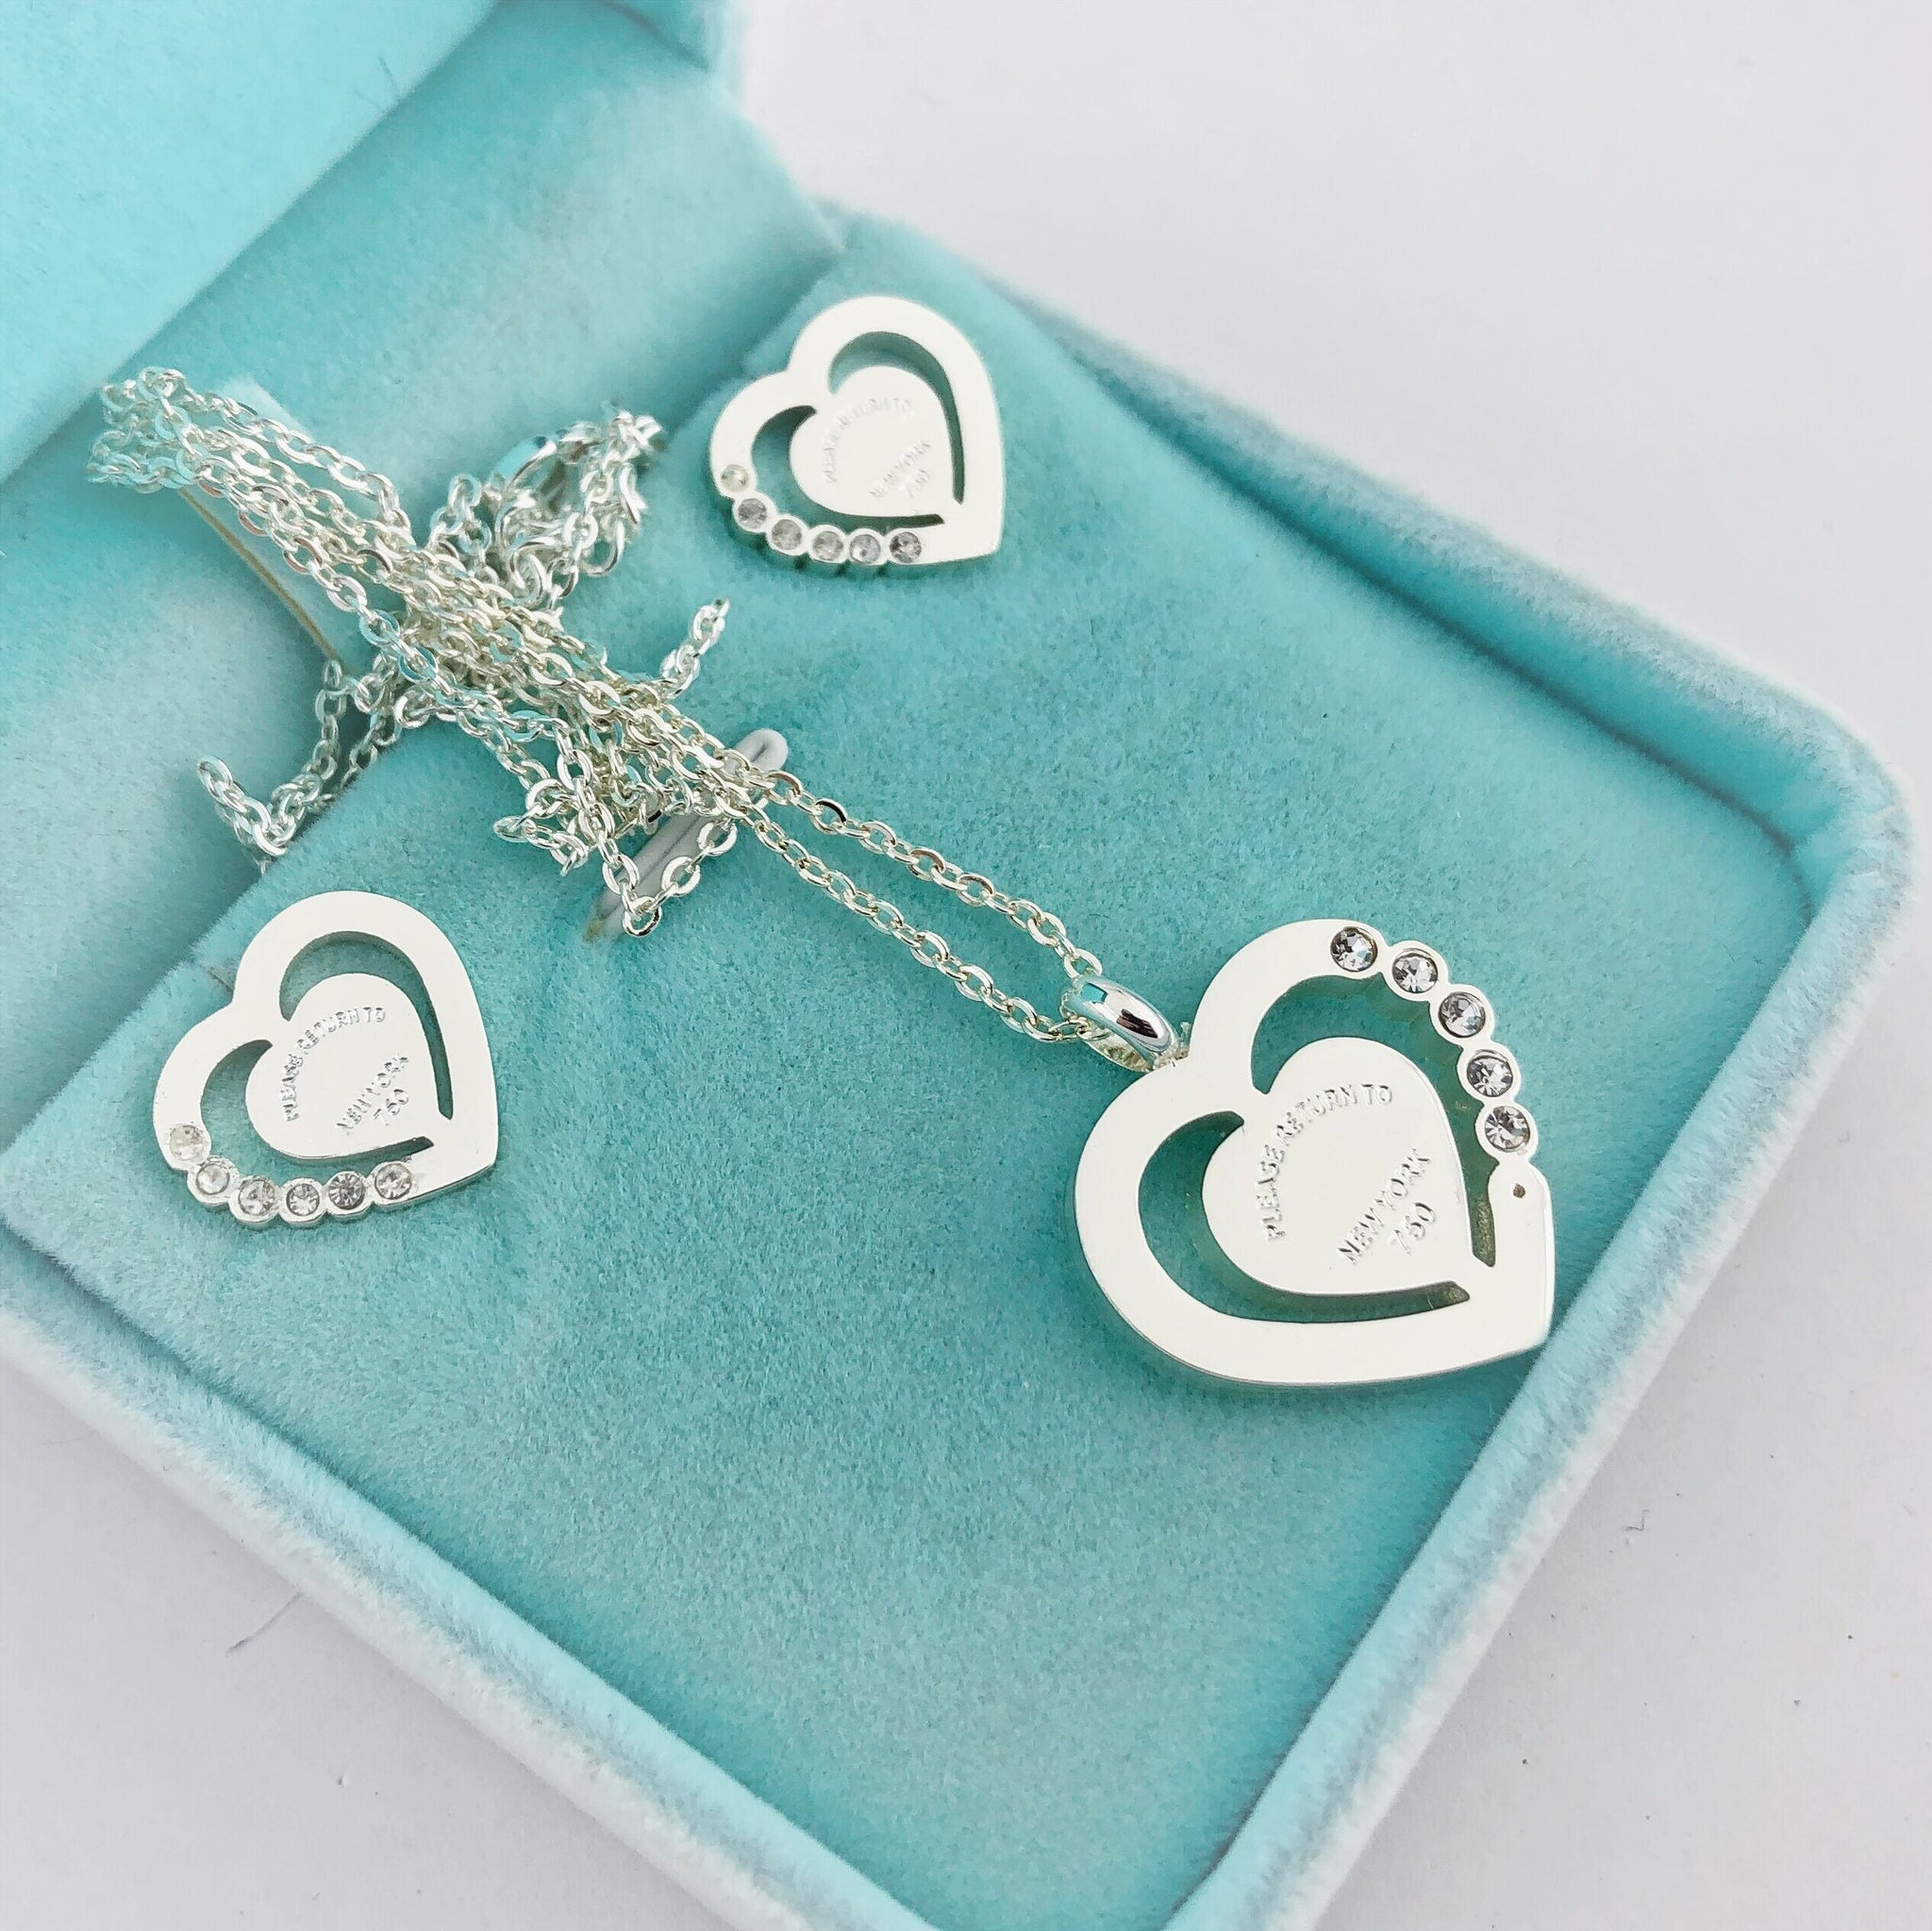 Stainless steel jewelry heart necklace